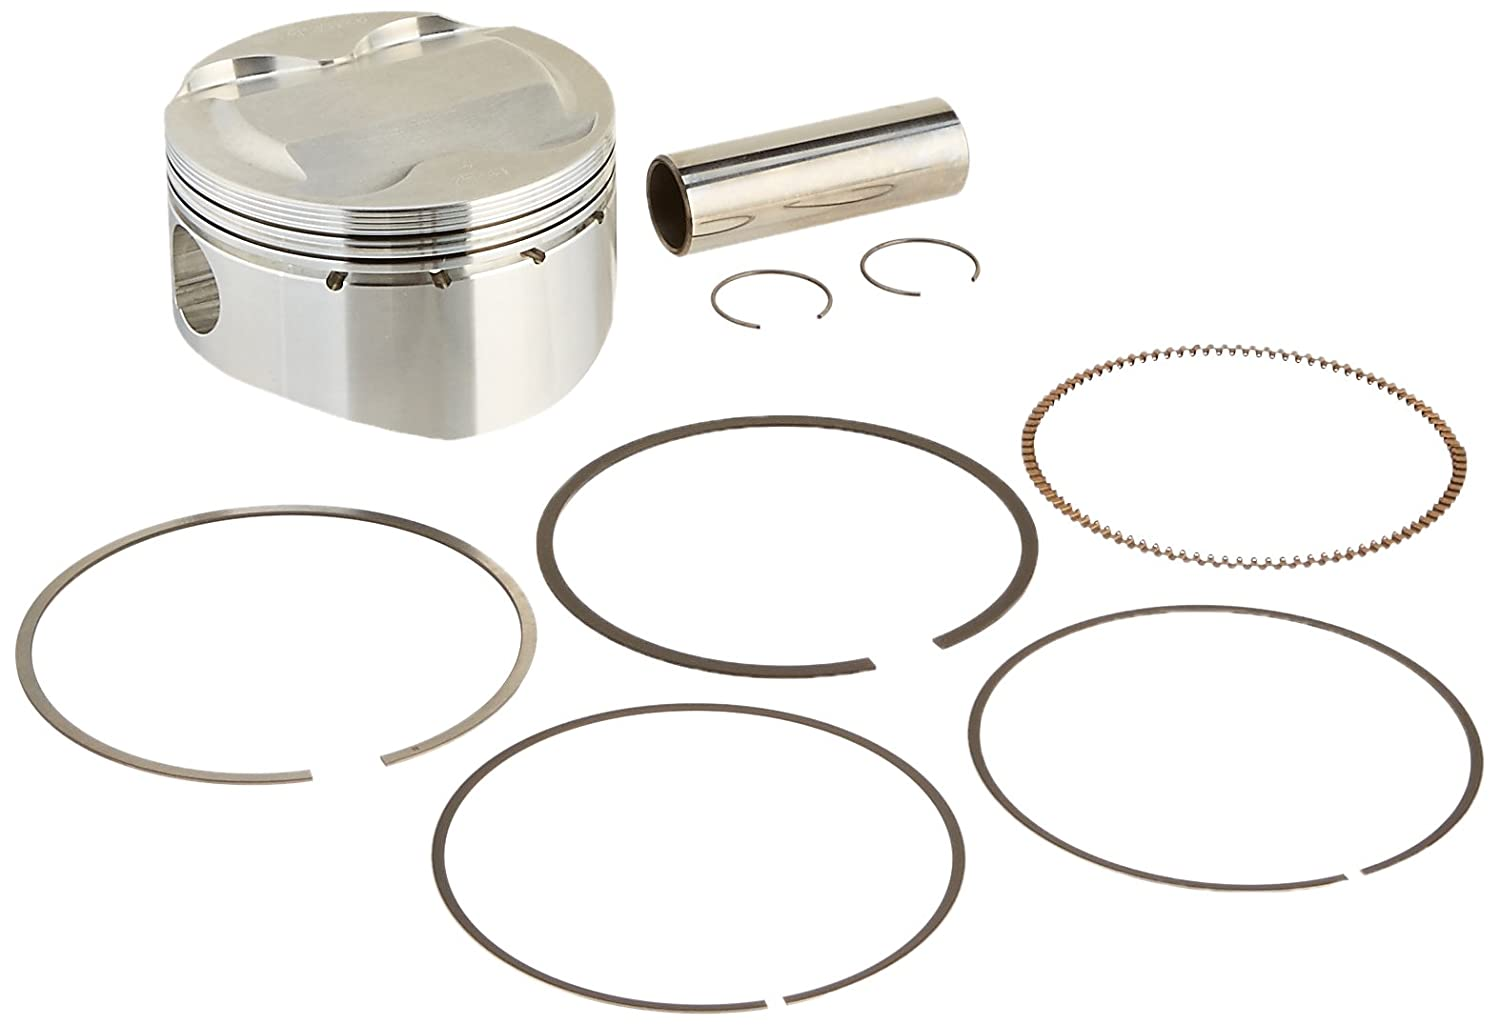 Wiseco 3189XG Ring Set for 81.00mm Cylinder Bore